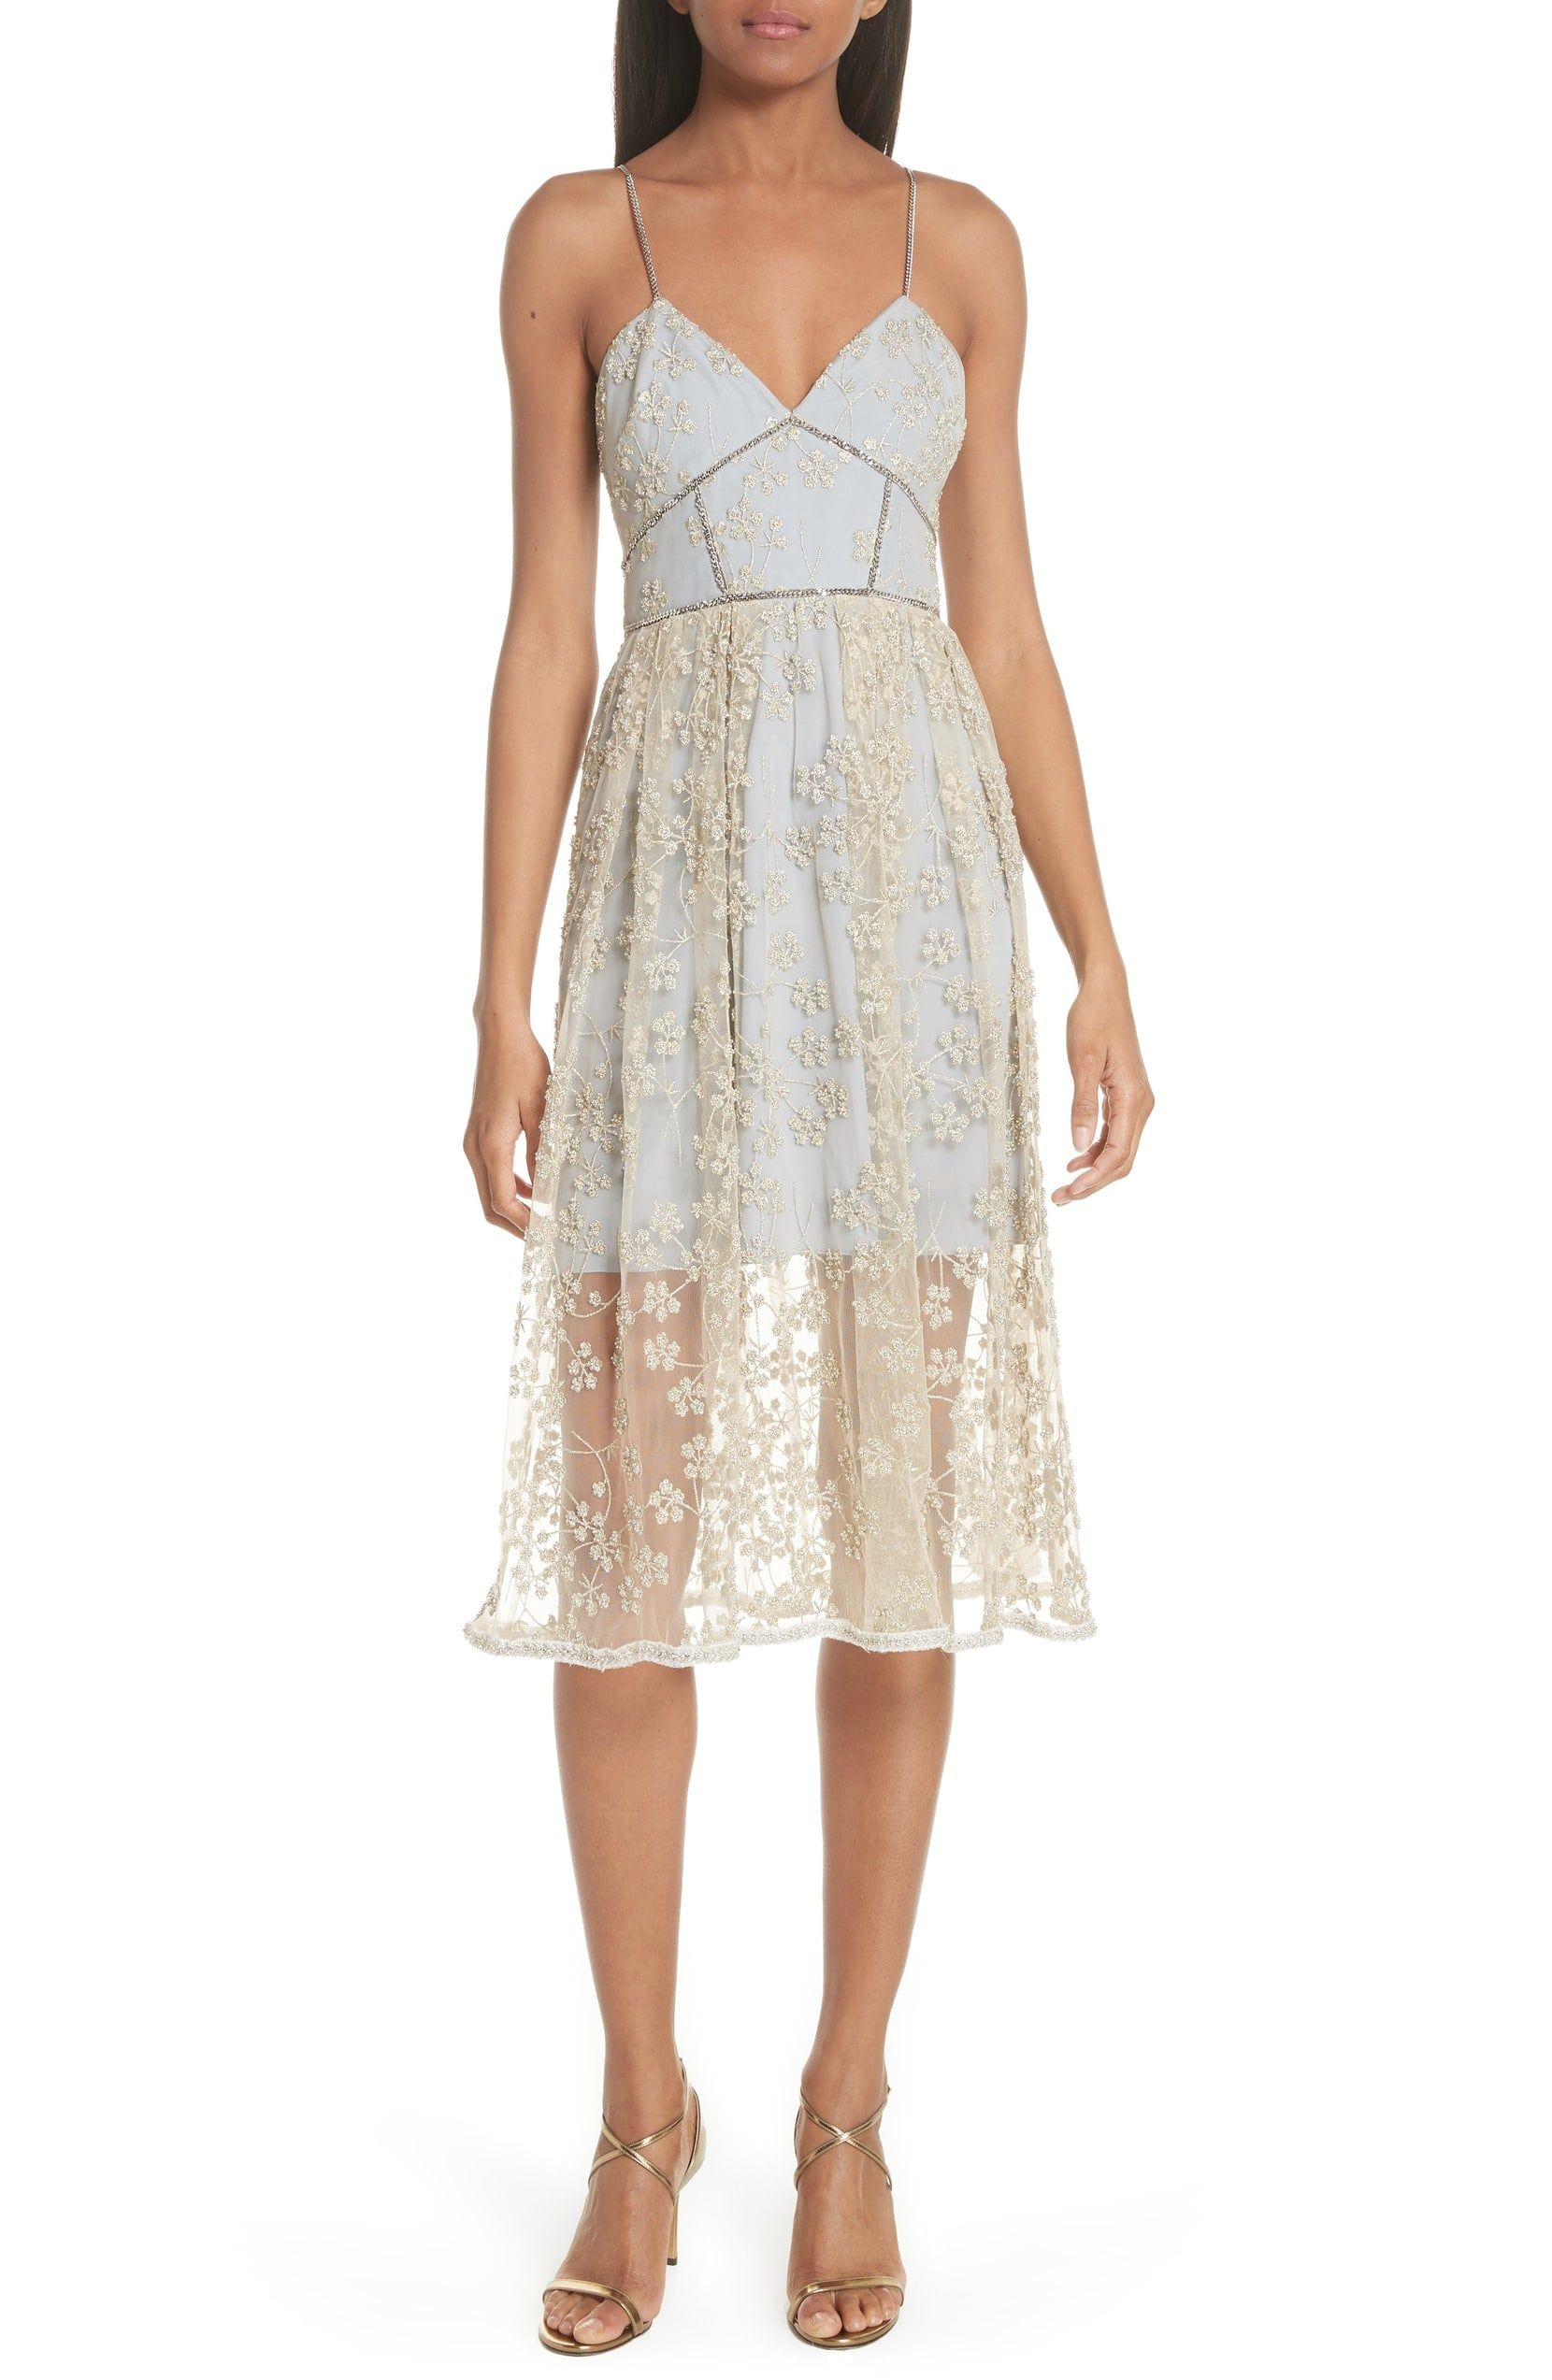 20bf8e36b511 Metallic Floral Embroidery Chain Strap Dress $520 from SHOP.NORDSTROM.COM